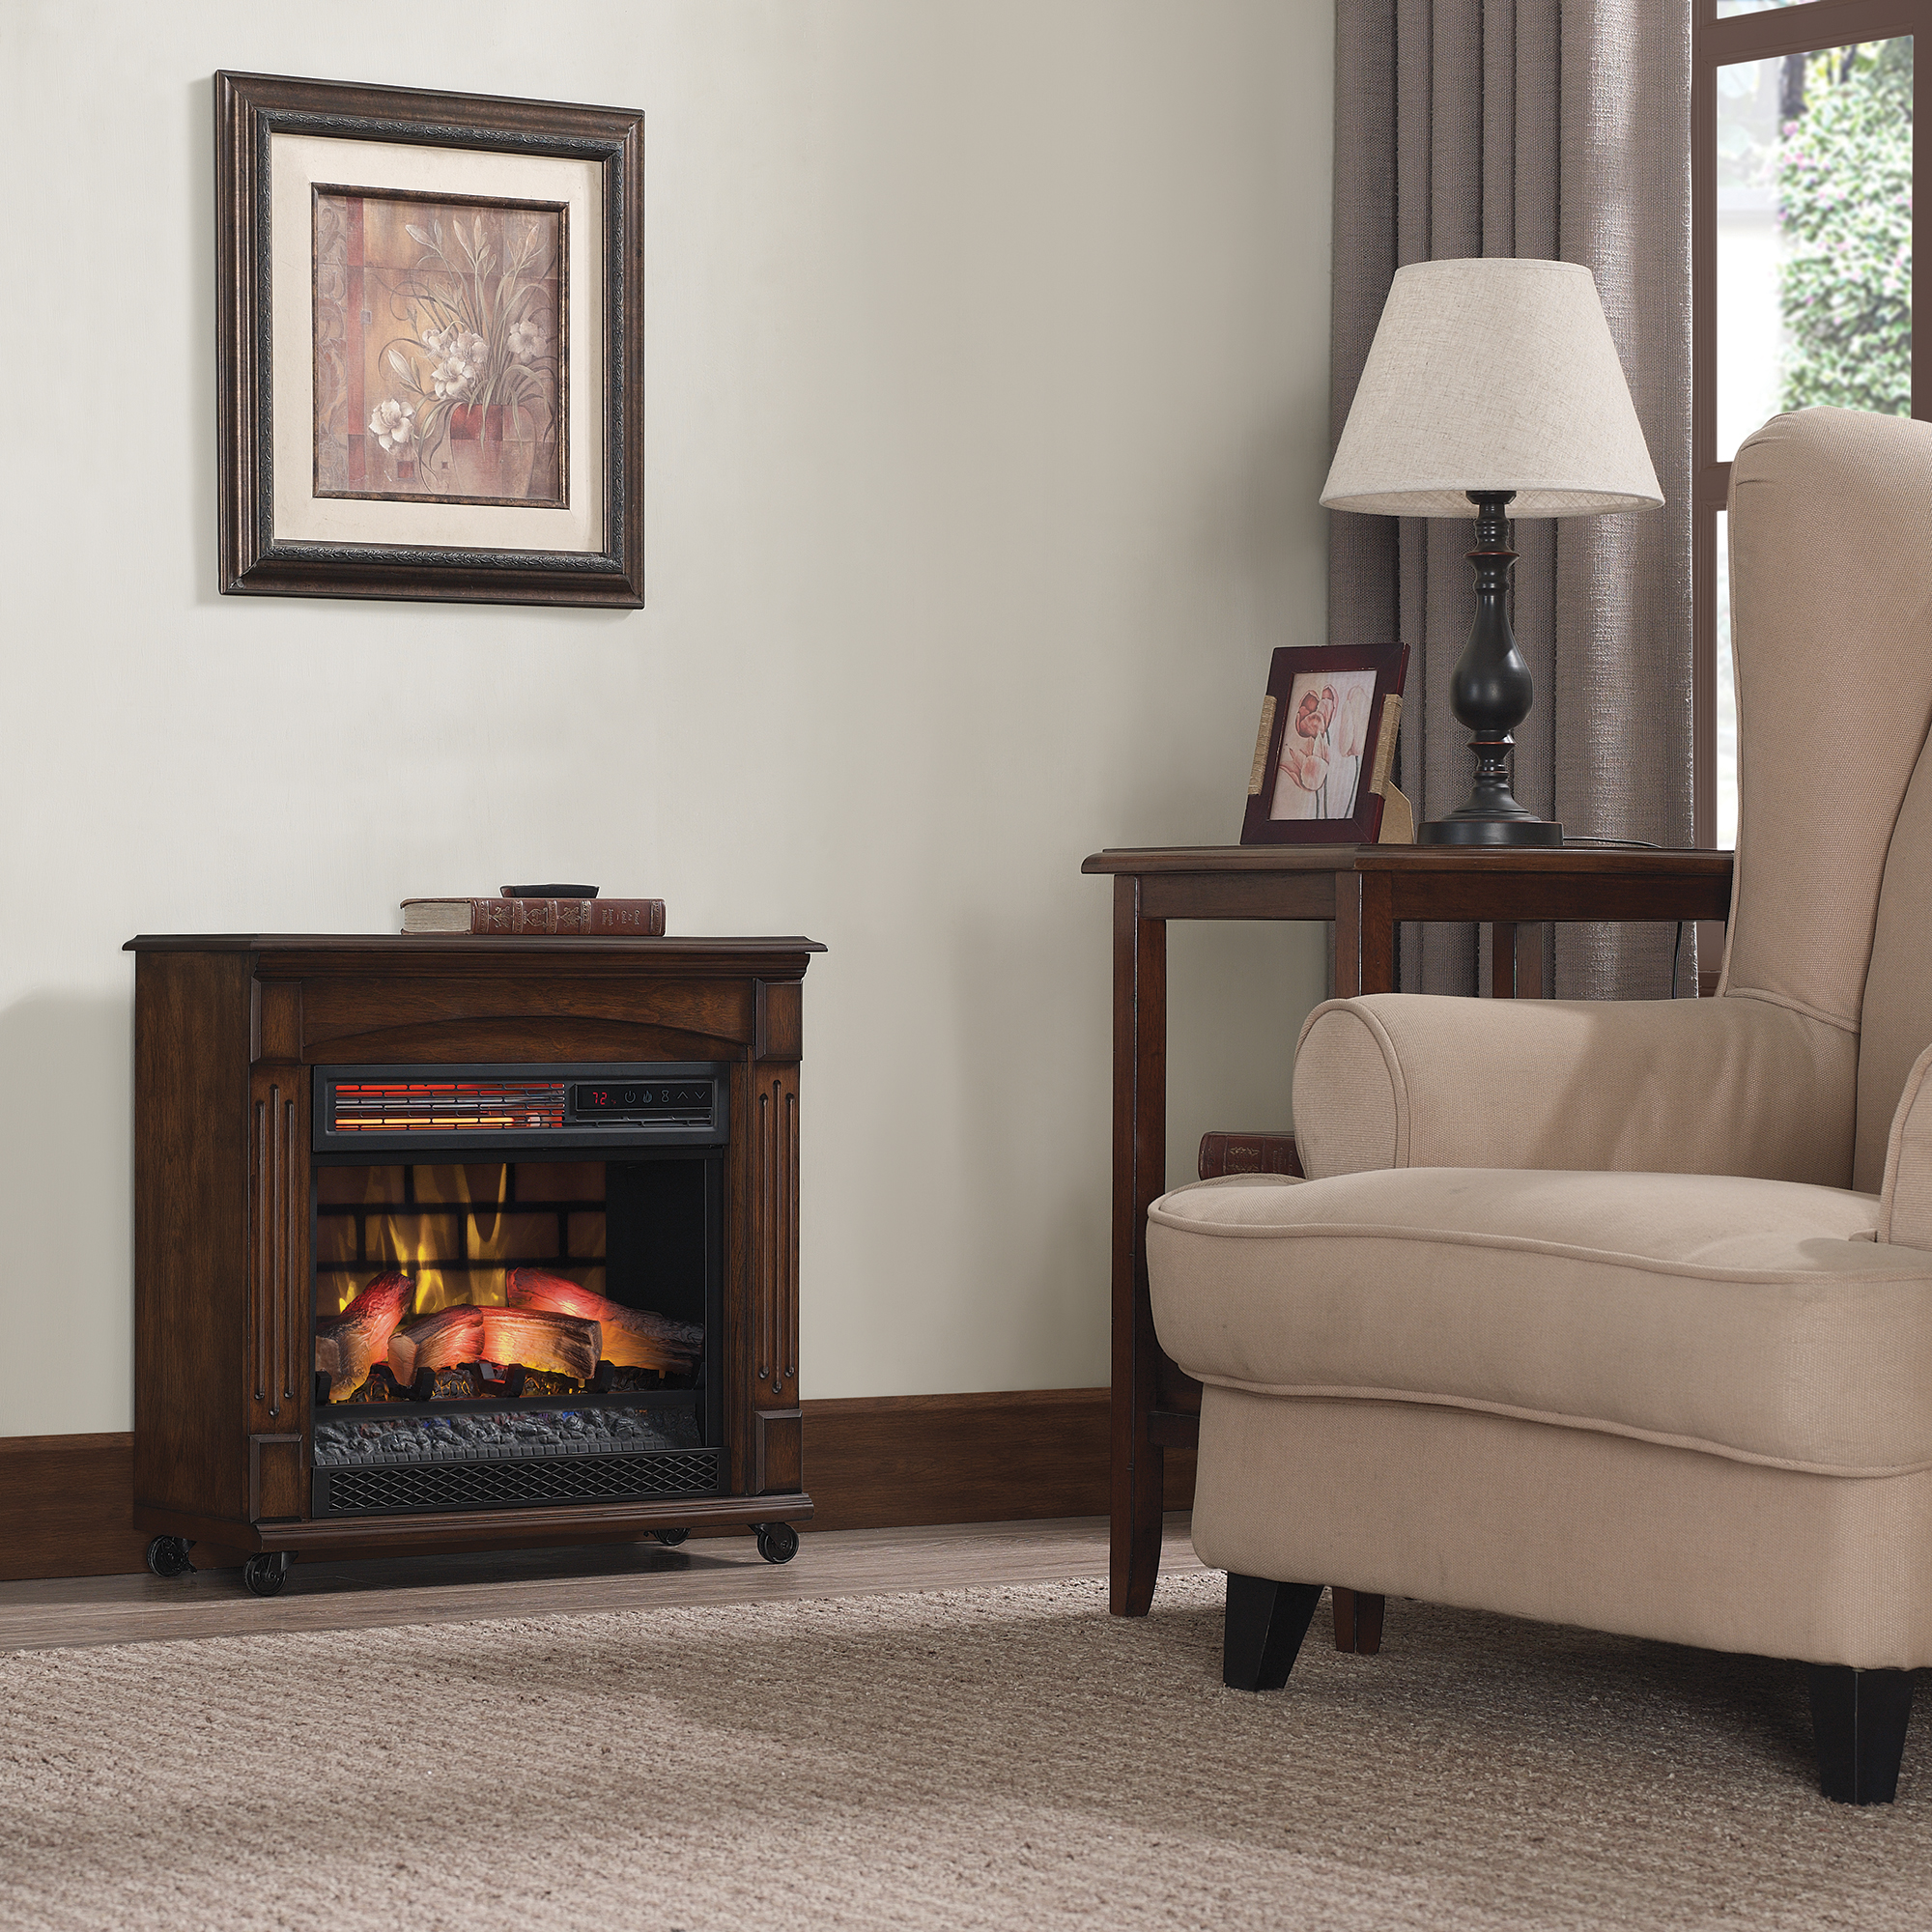 Chimney Free Rolling Mantel Infrared Fireplace Reviews